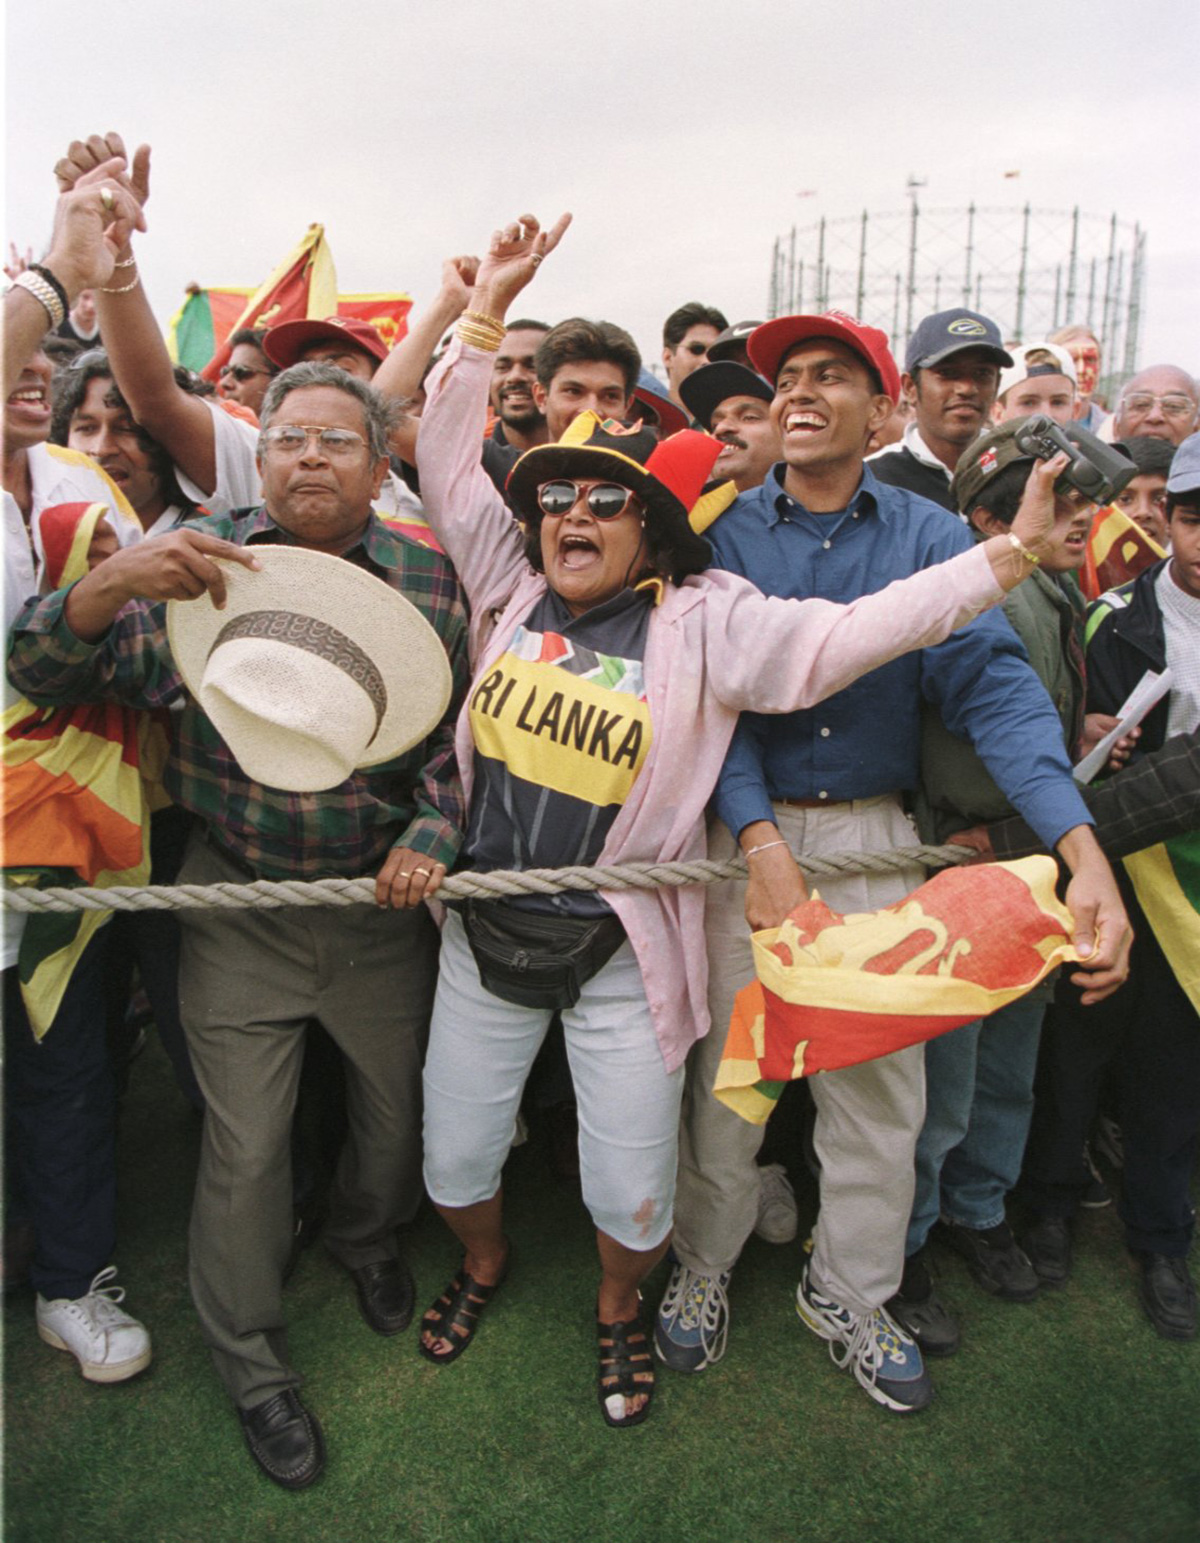 In fine voice: the fans at The Oval give it up for Murali and Co